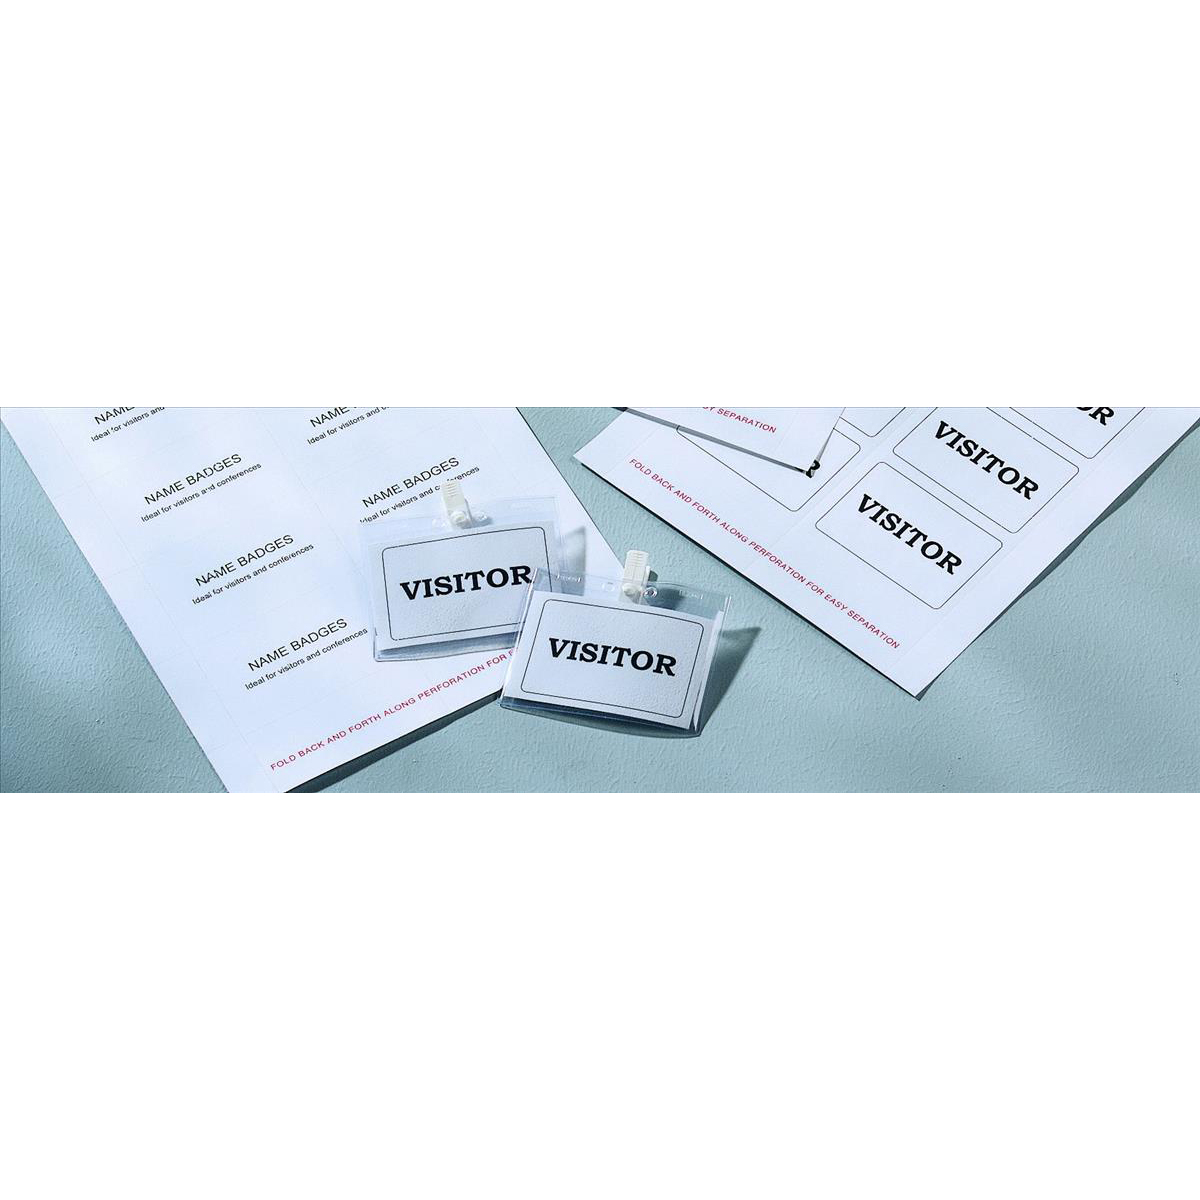 Avery Name Badges Laser-printable Refill Kit 8 per Card W86.5xH55.5mm Ref L7418-25UK [25 Sheets]